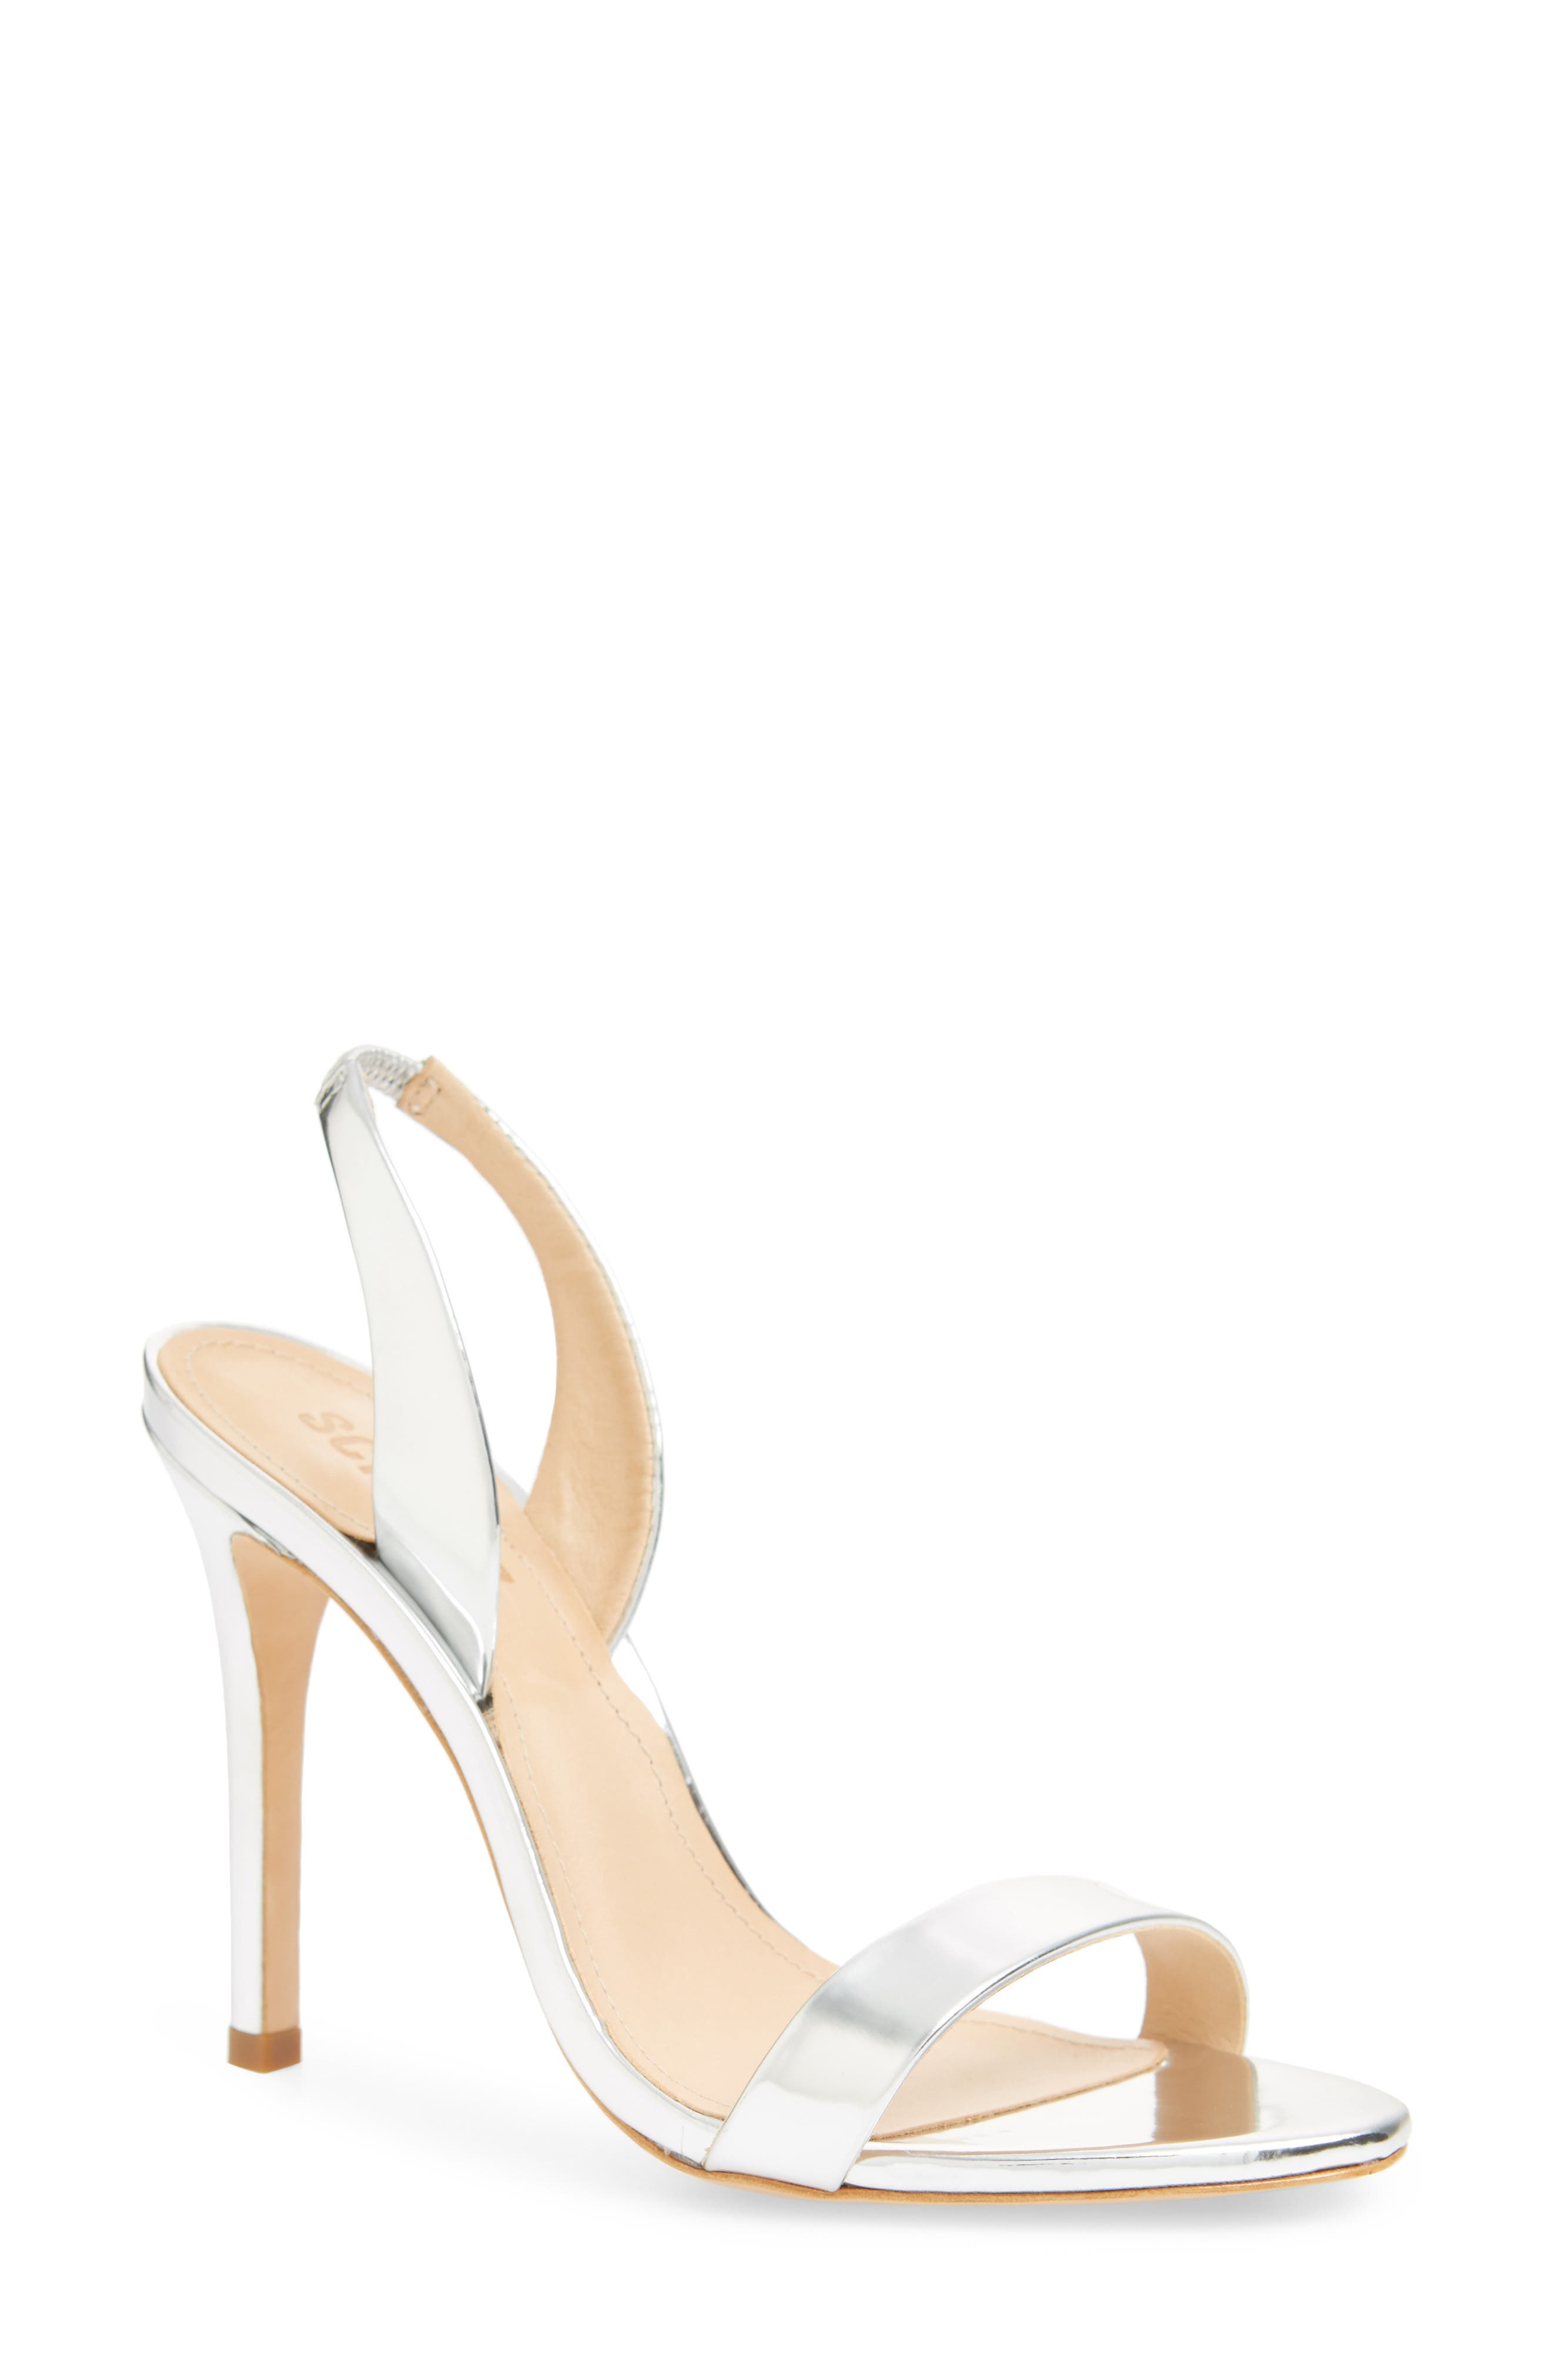 Luriane Sandal,                         Main,                         color, SILVER PATENT LEATHER